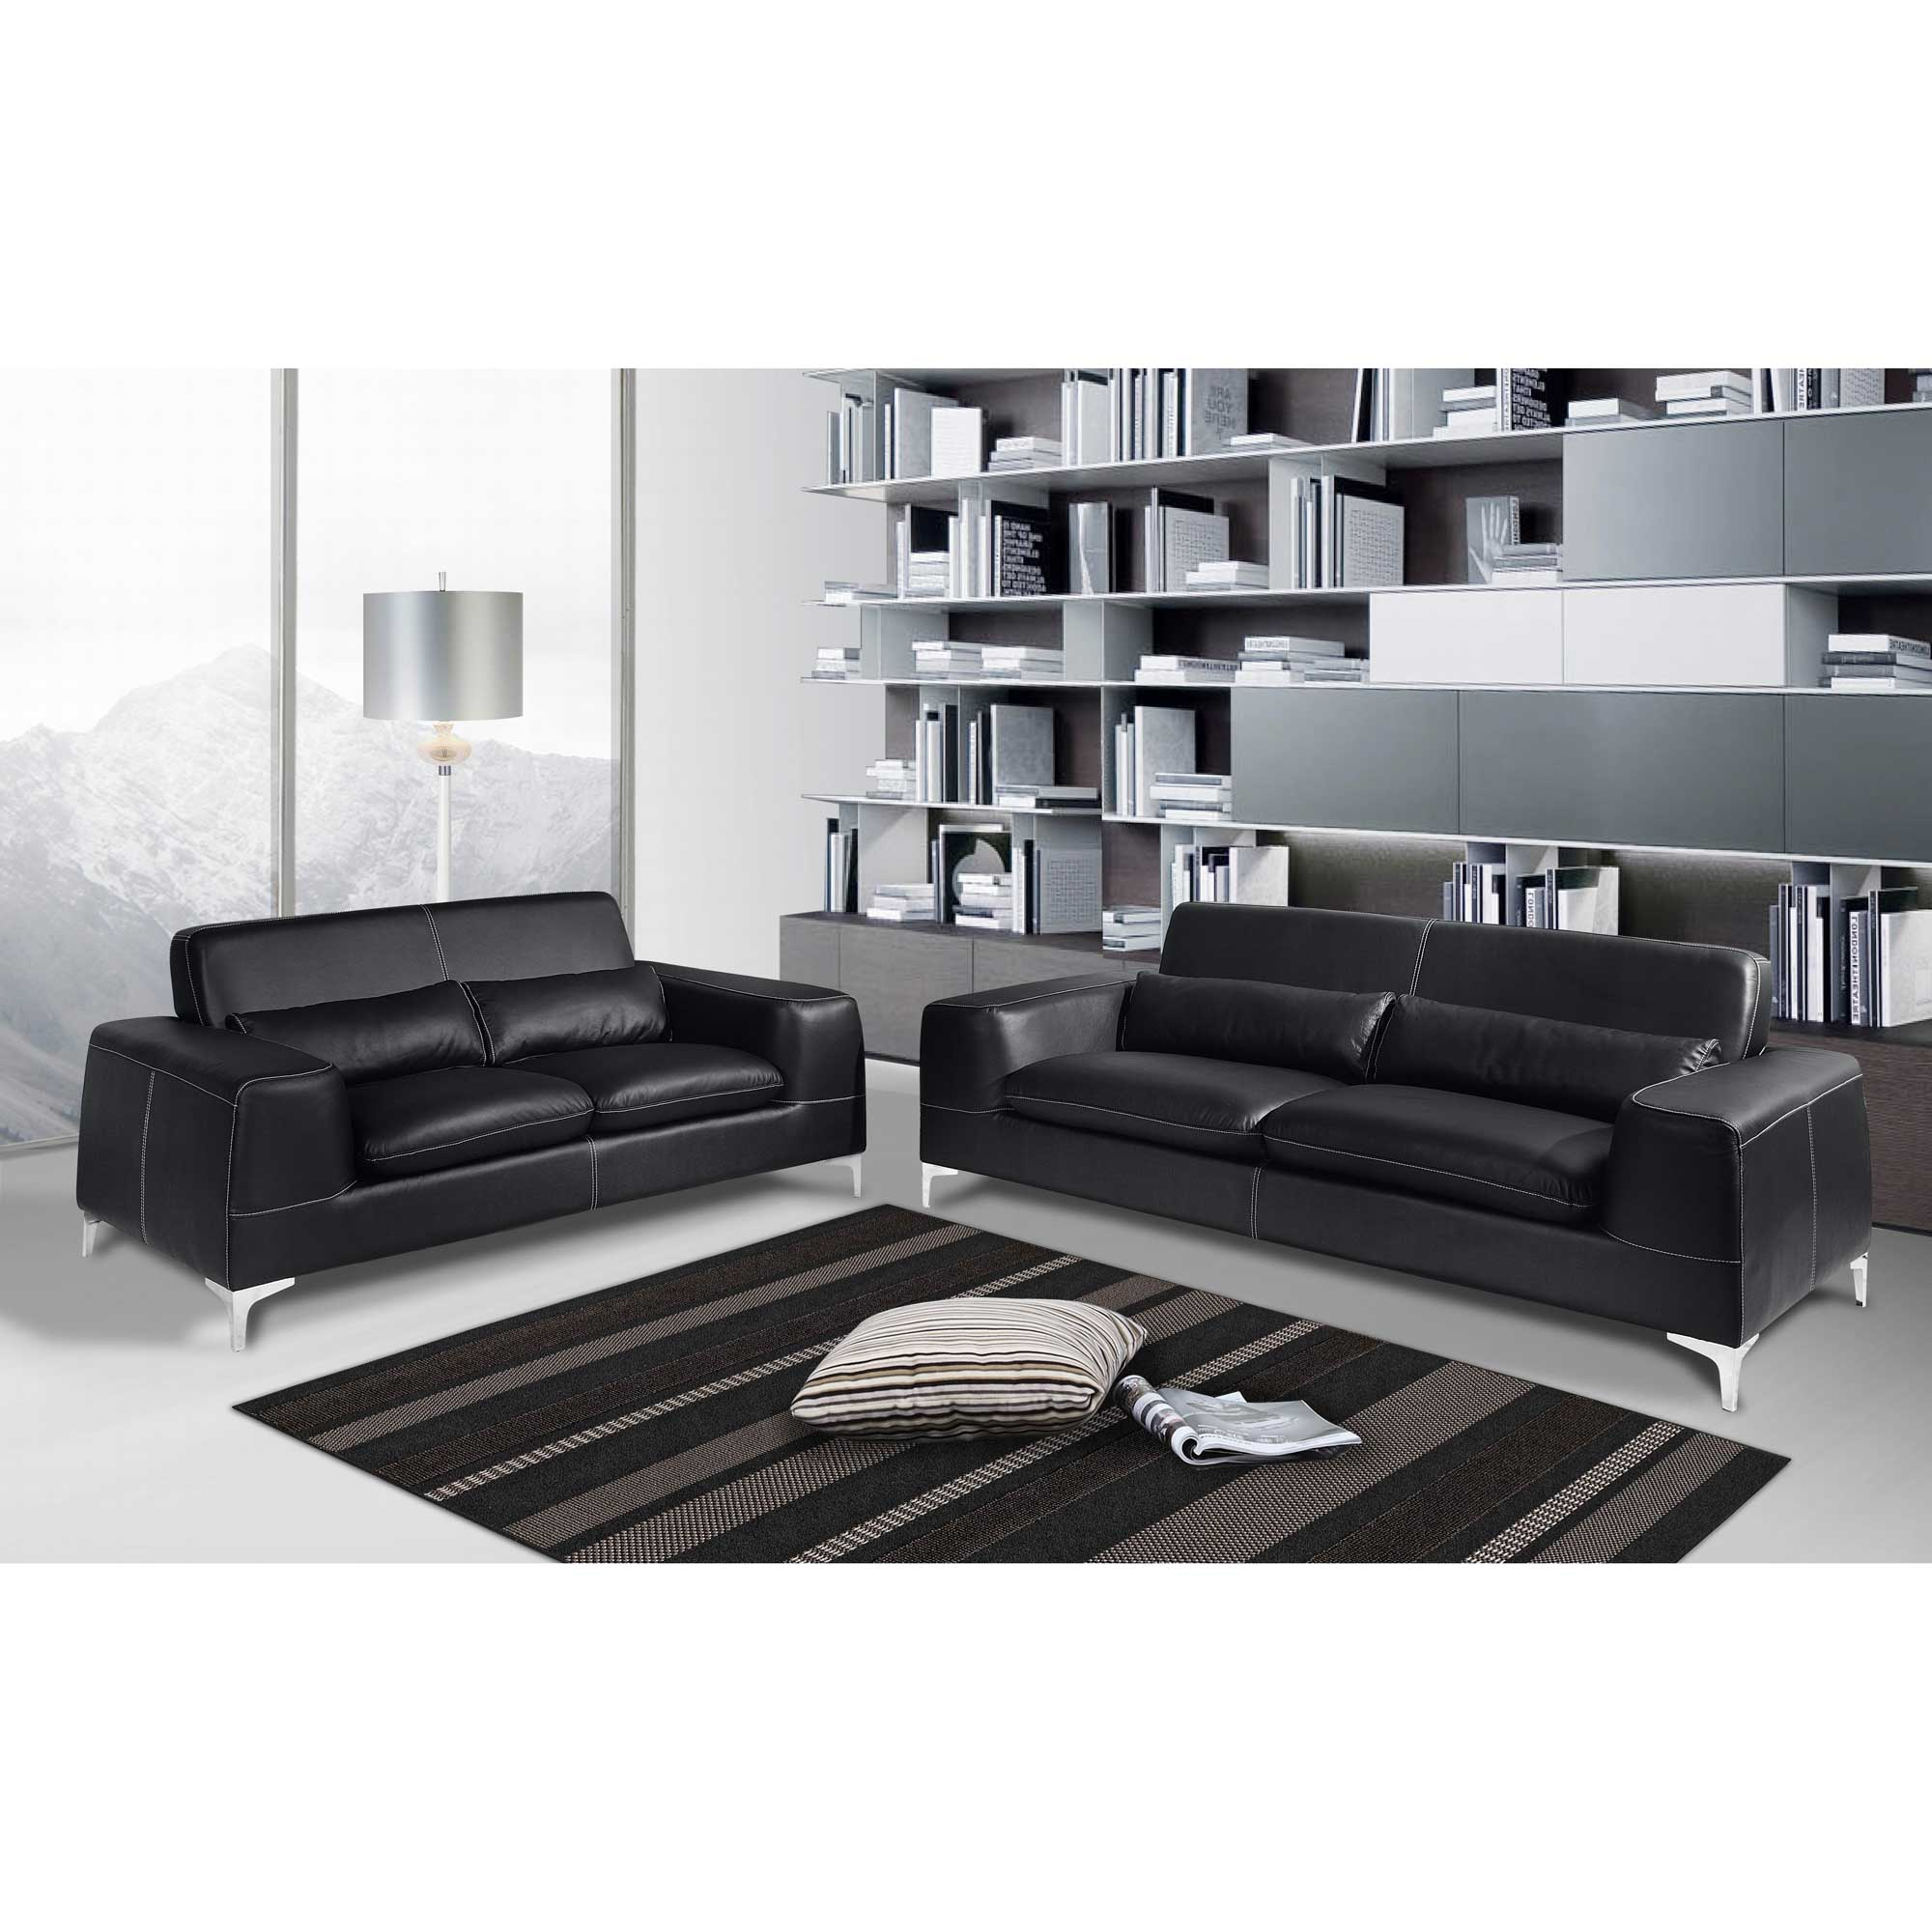 salon canap 3 places 2 places minneapolis cuir de buffle sur delamaison ventes pas. Black Bedroom Furniture Sets. Home Design Ideas